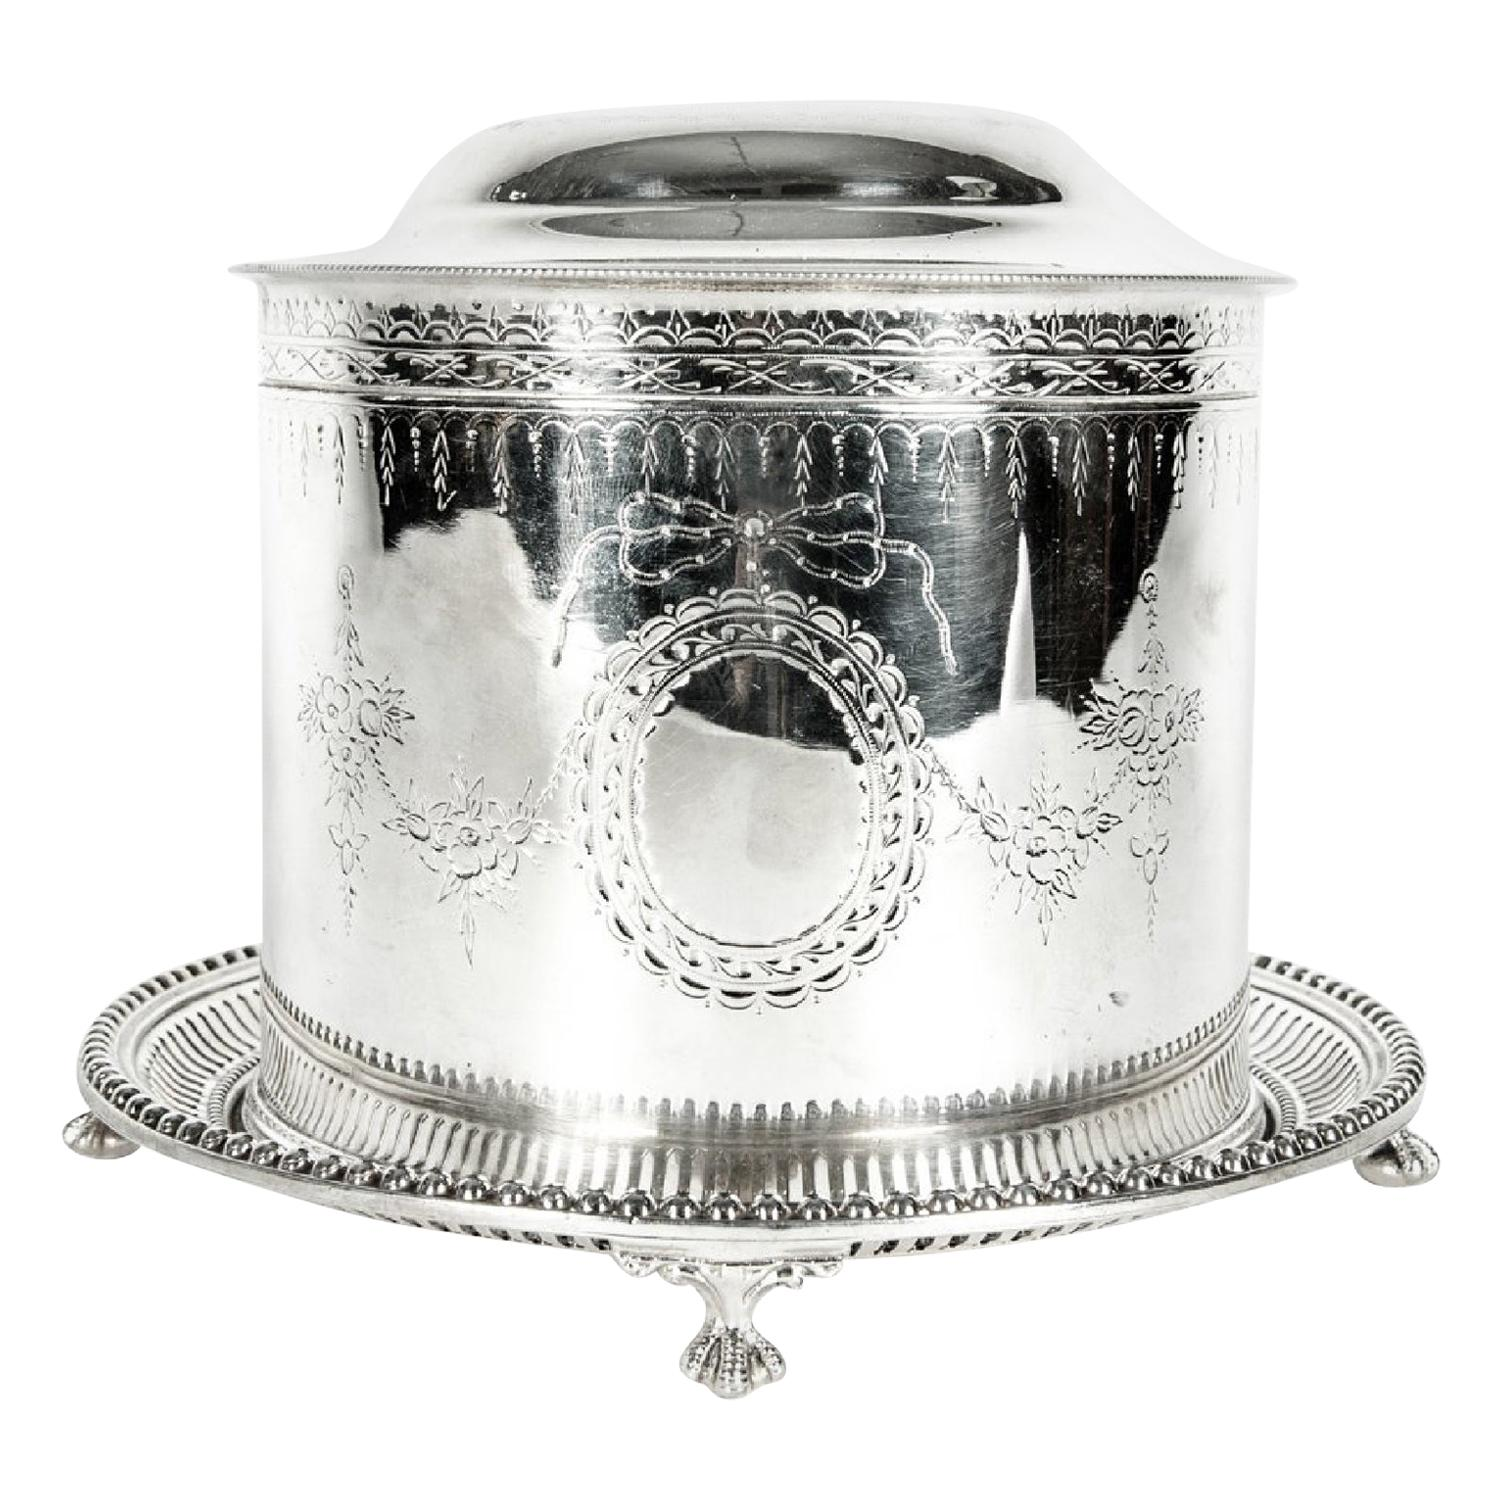 English Silver Plate Covered Biscuit Box / Tea Caddy